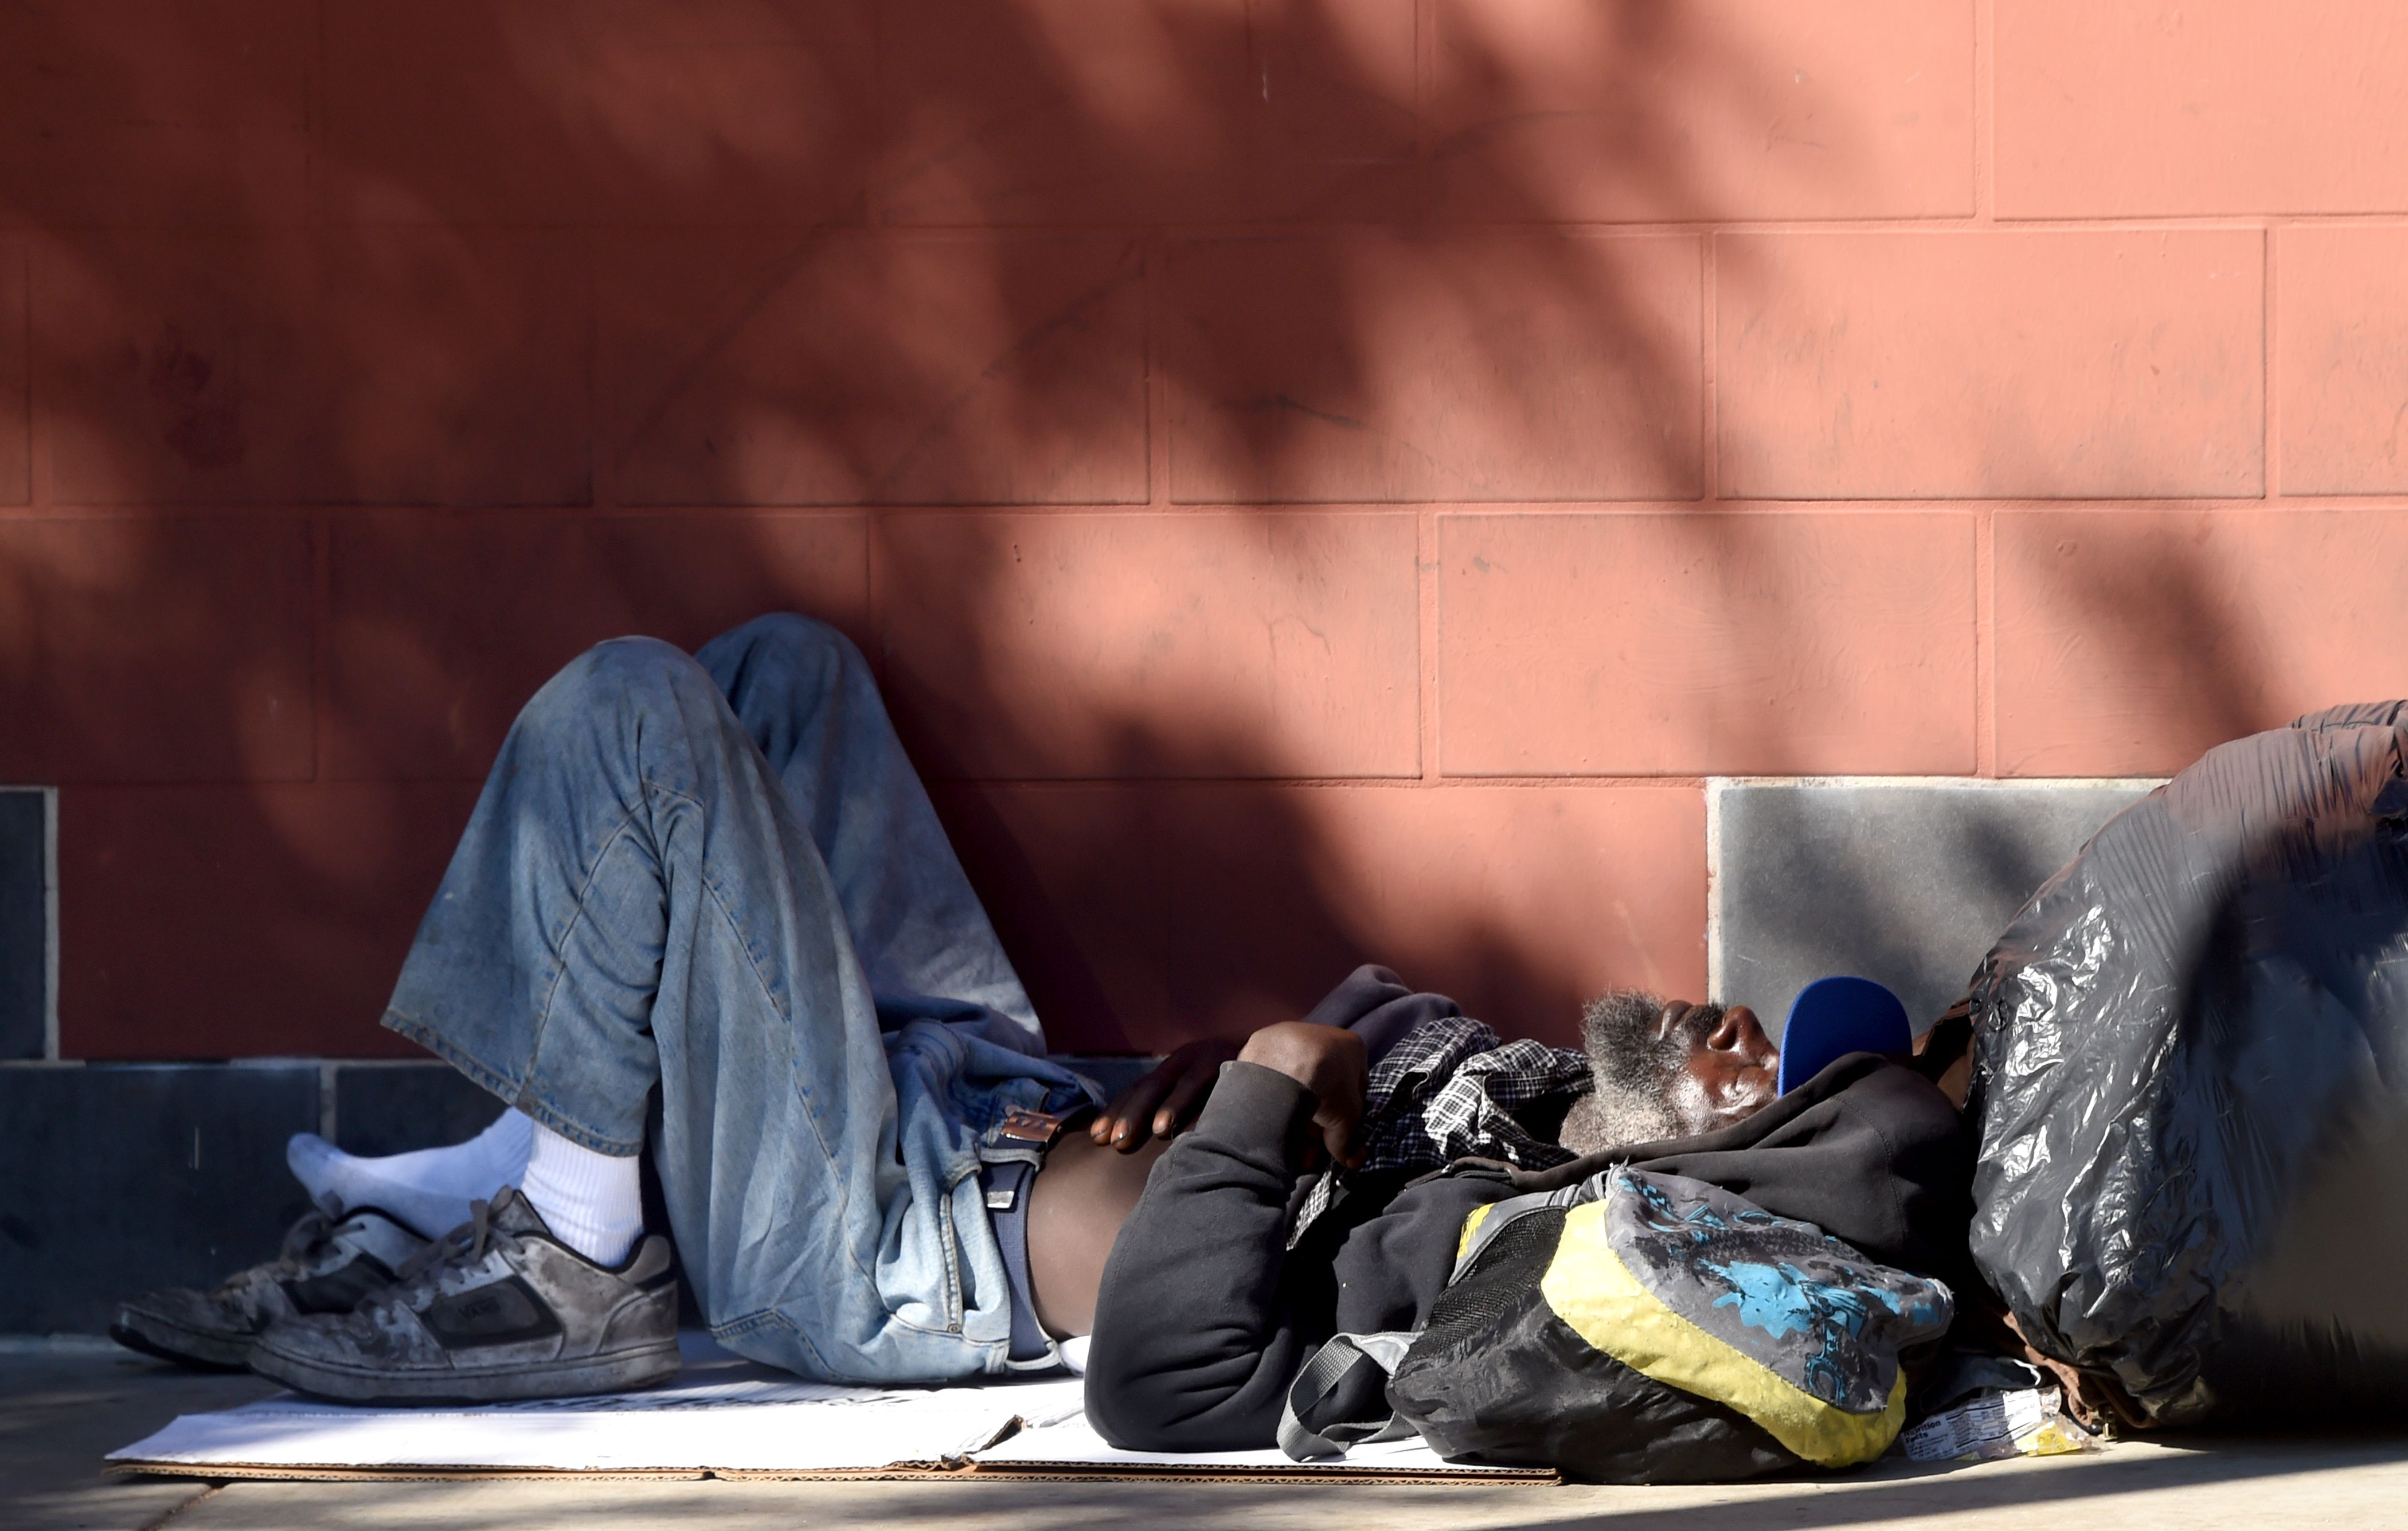 homelessness in us Homelessness, generally considered an urban problem, seems to be creeping into smaller cities and towns new research from the office of housing and urban development says it's also impacting more families.